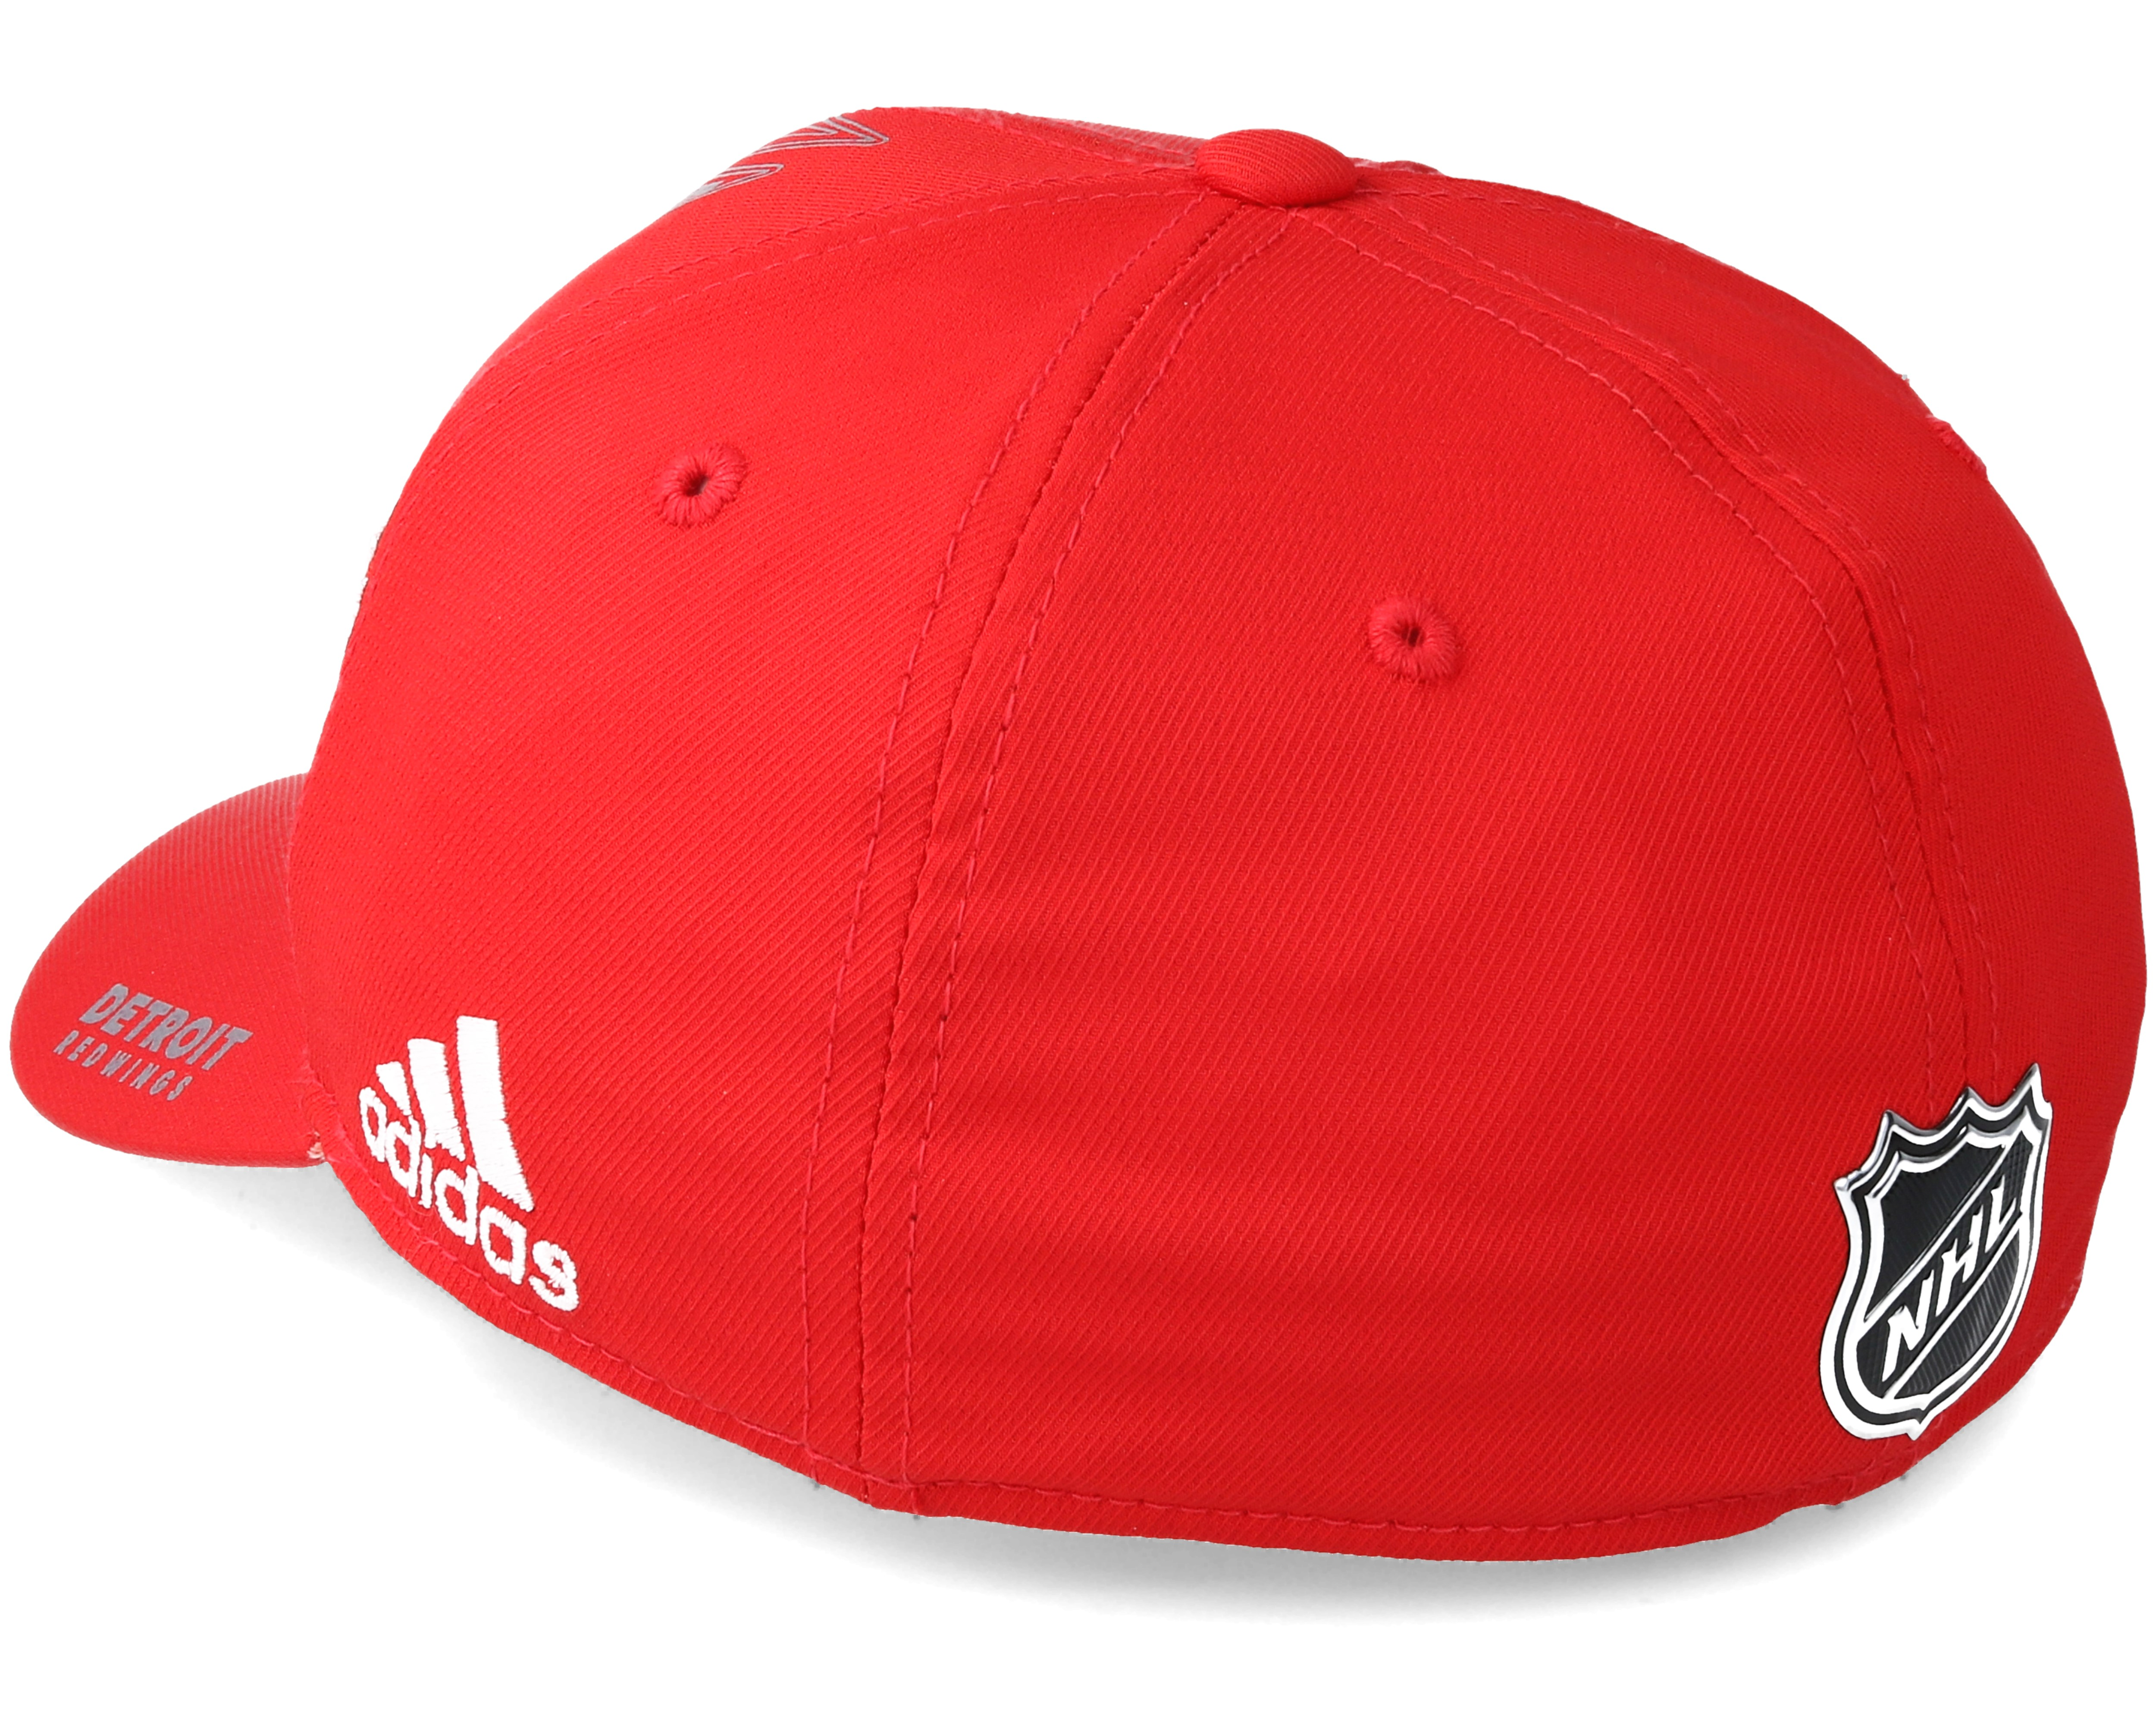 Detroit Red Wings Second Season Structured Red Flexfit - Adidas caps ... a5ead534fc2e